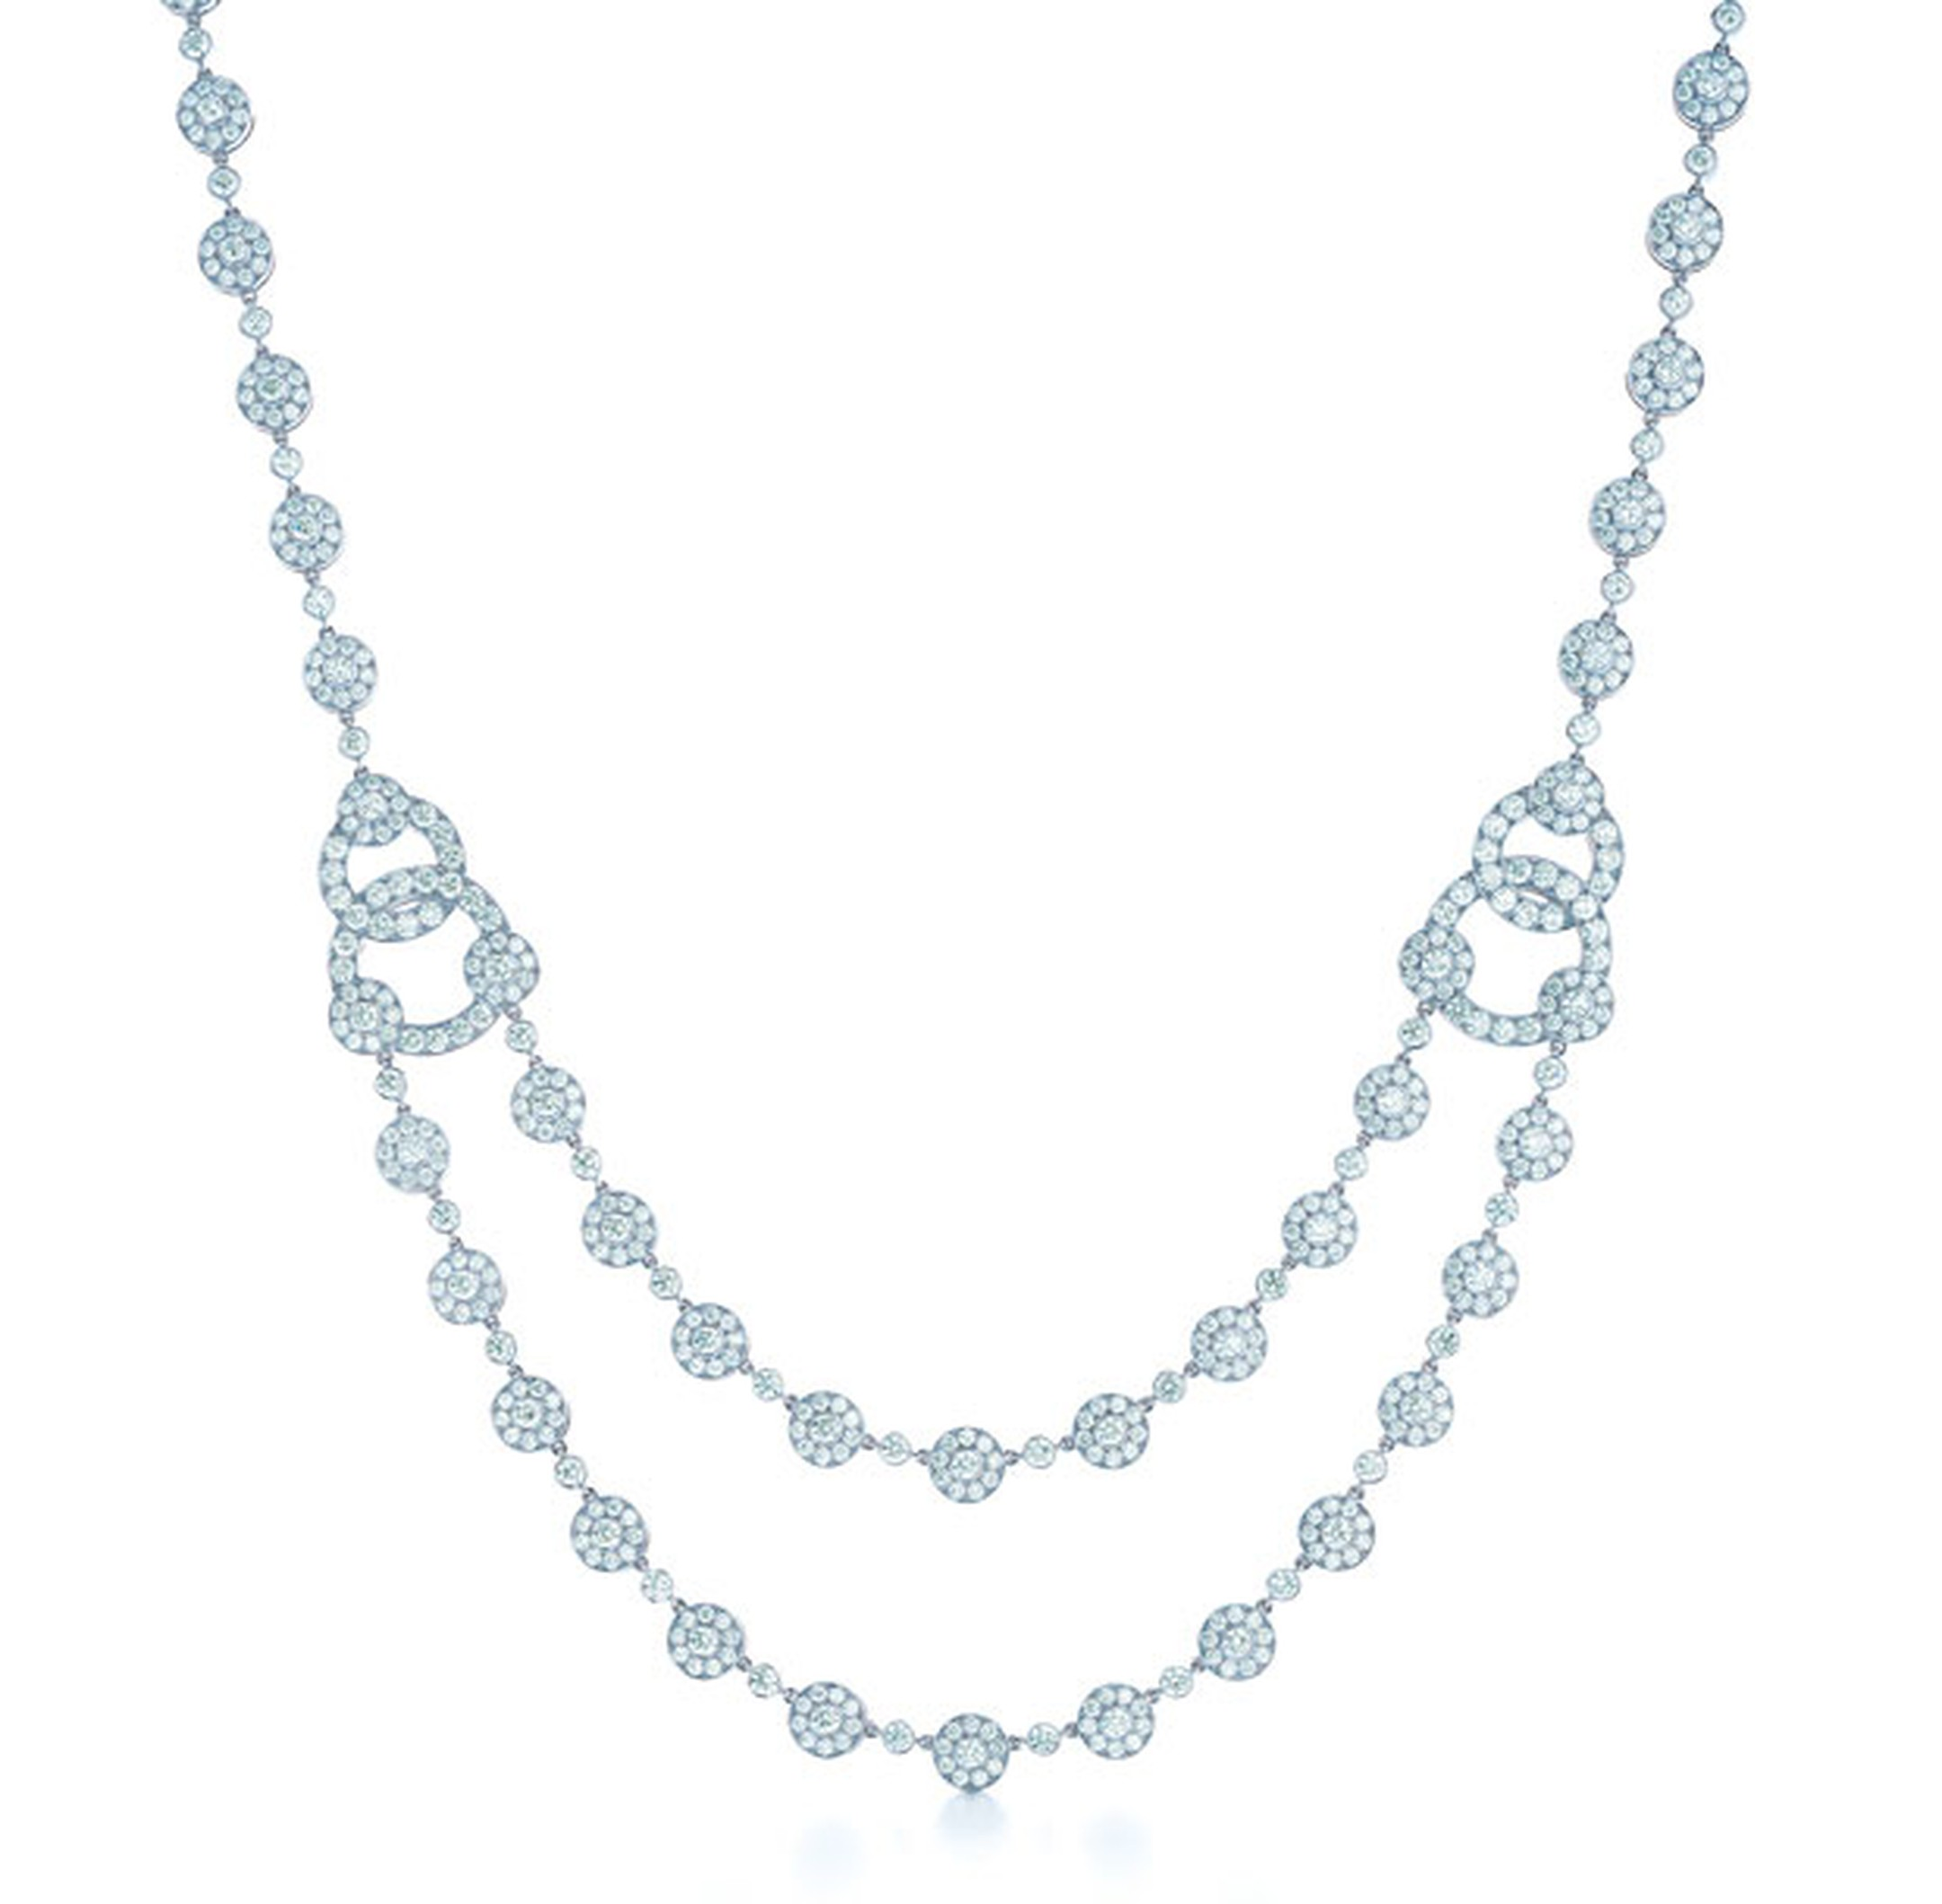 Tiffany & Co Circlet diamond necklace